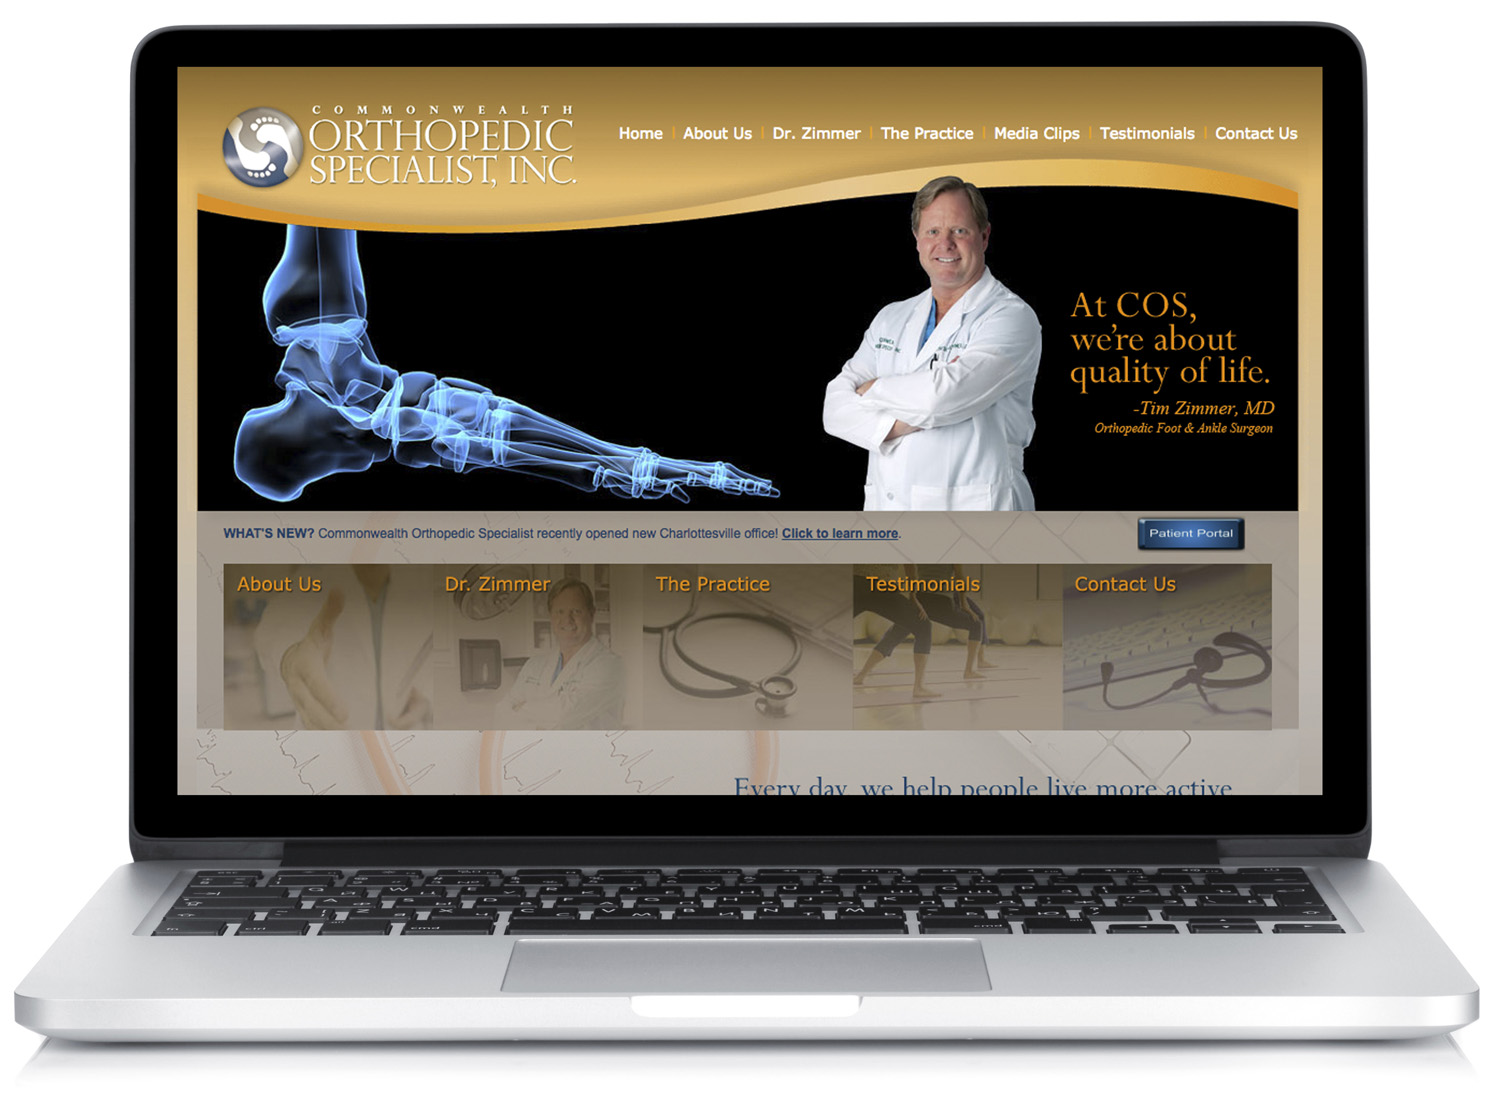 Commonwealth Orthopedic Specialist